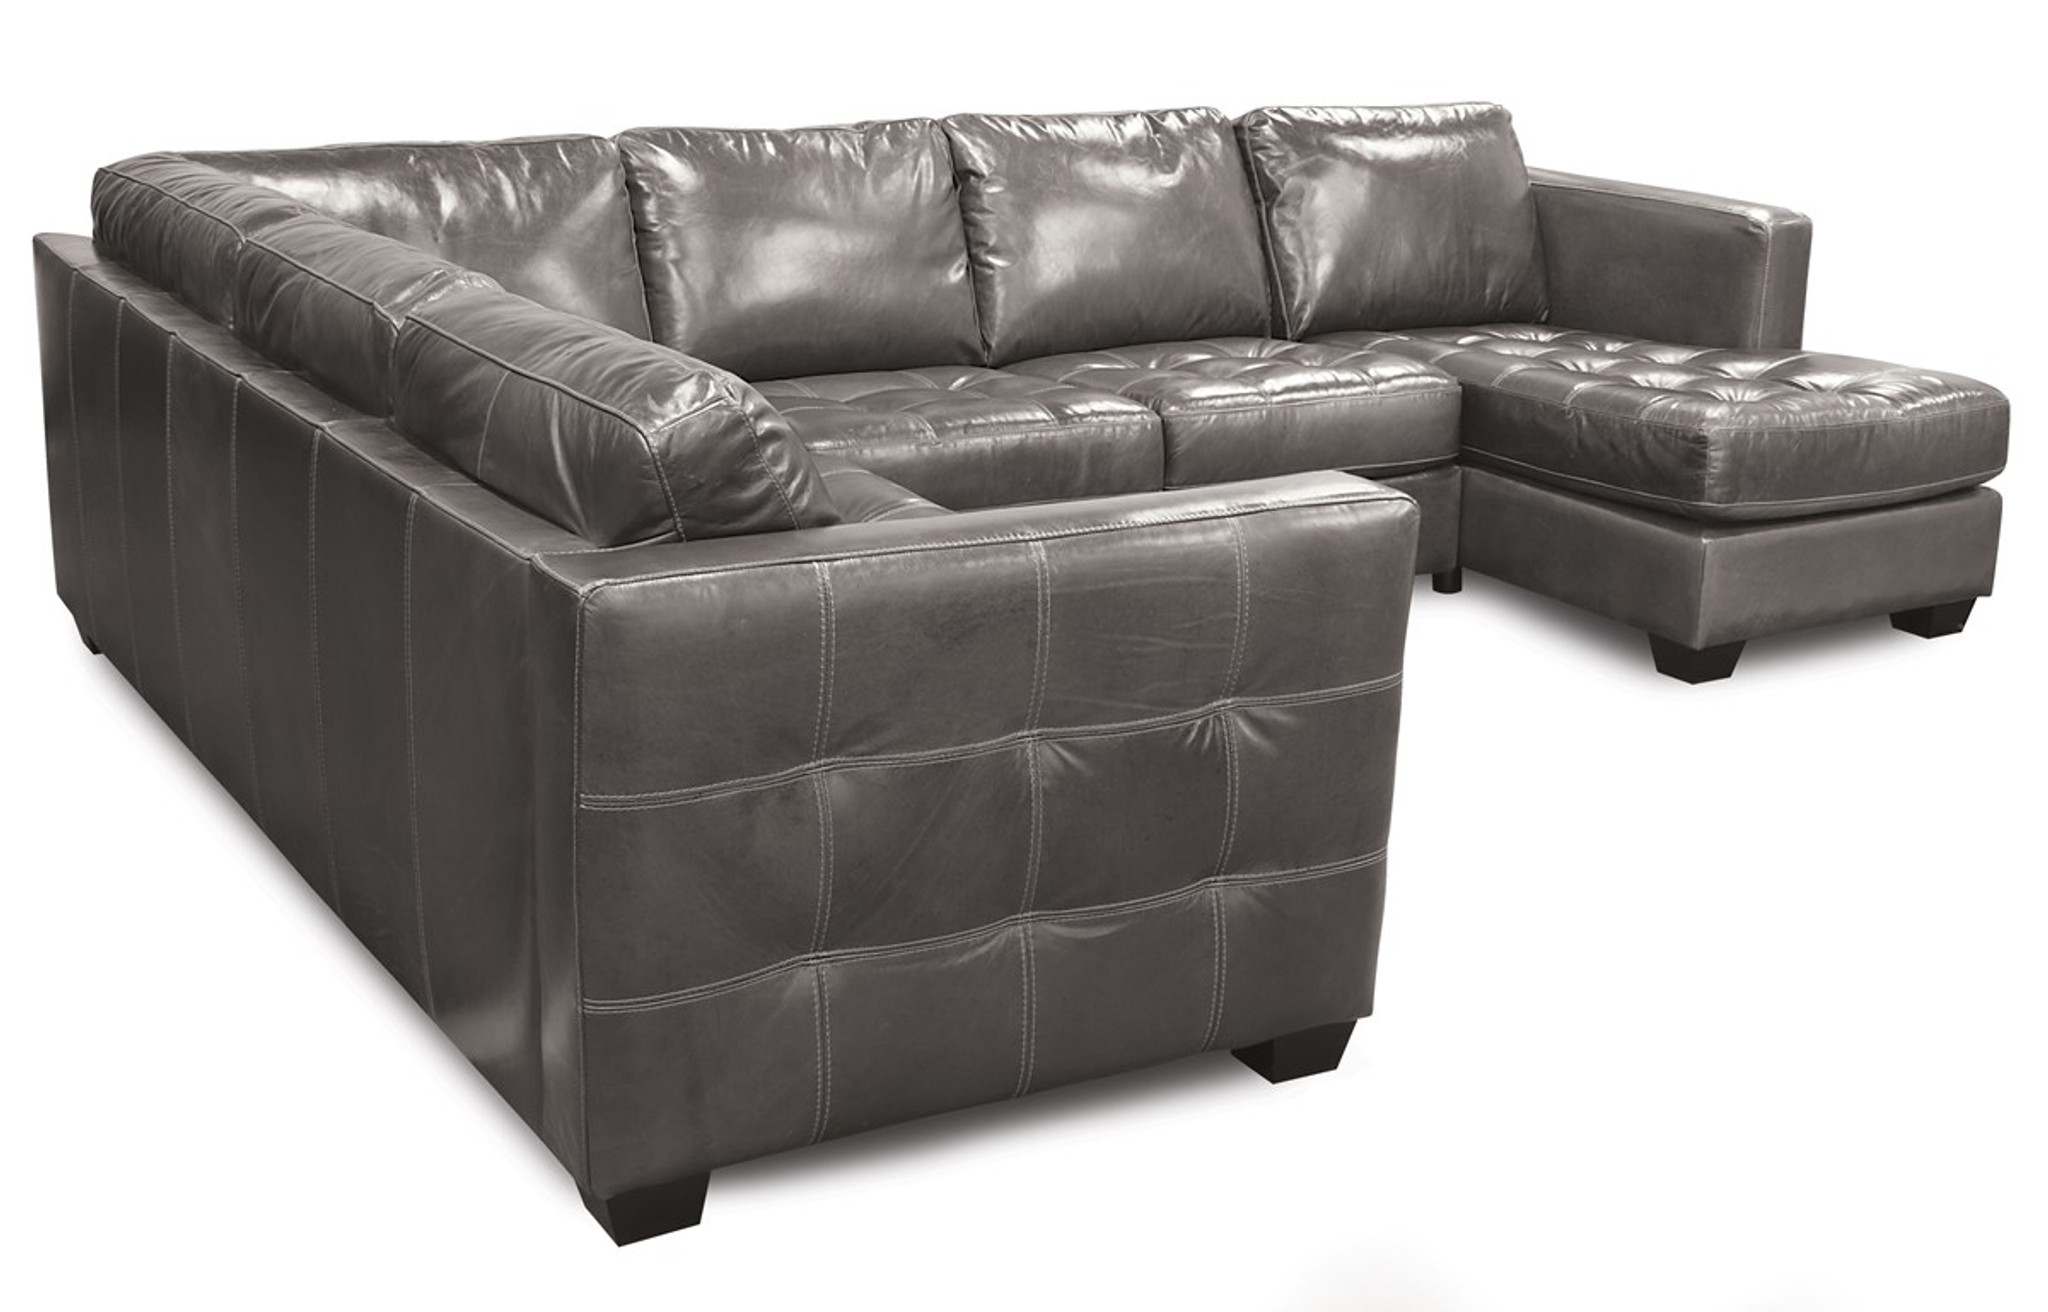 Palliser 77558 barrett sectional